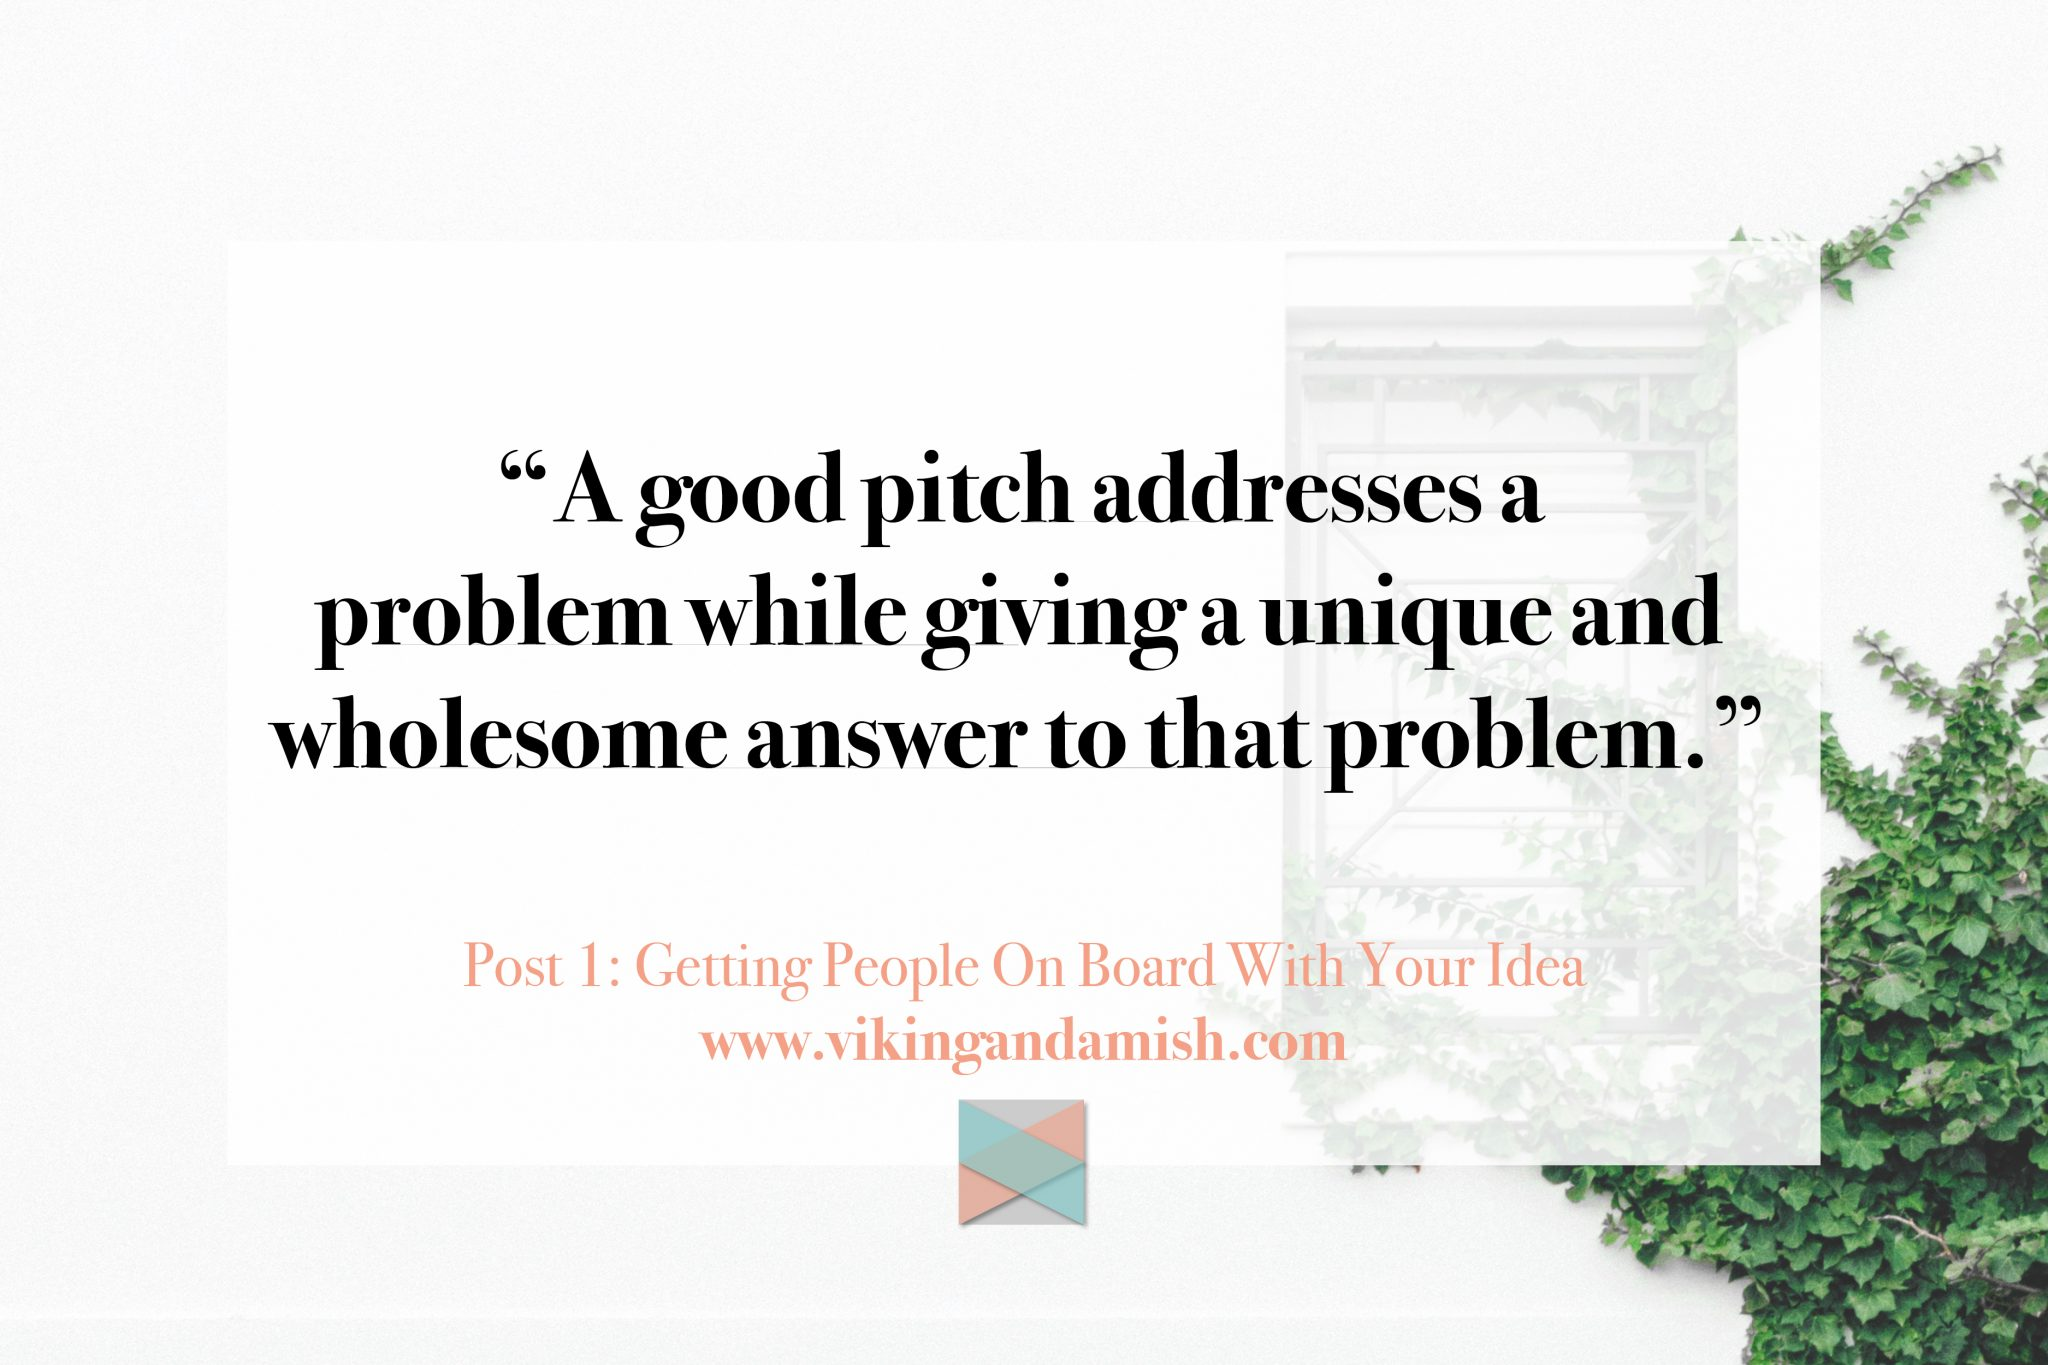 A Good Pitch Solves A Problem | The Fundamentals Of The Pitch - Learn how to get people on board with your idea | www.vikingandamish.com